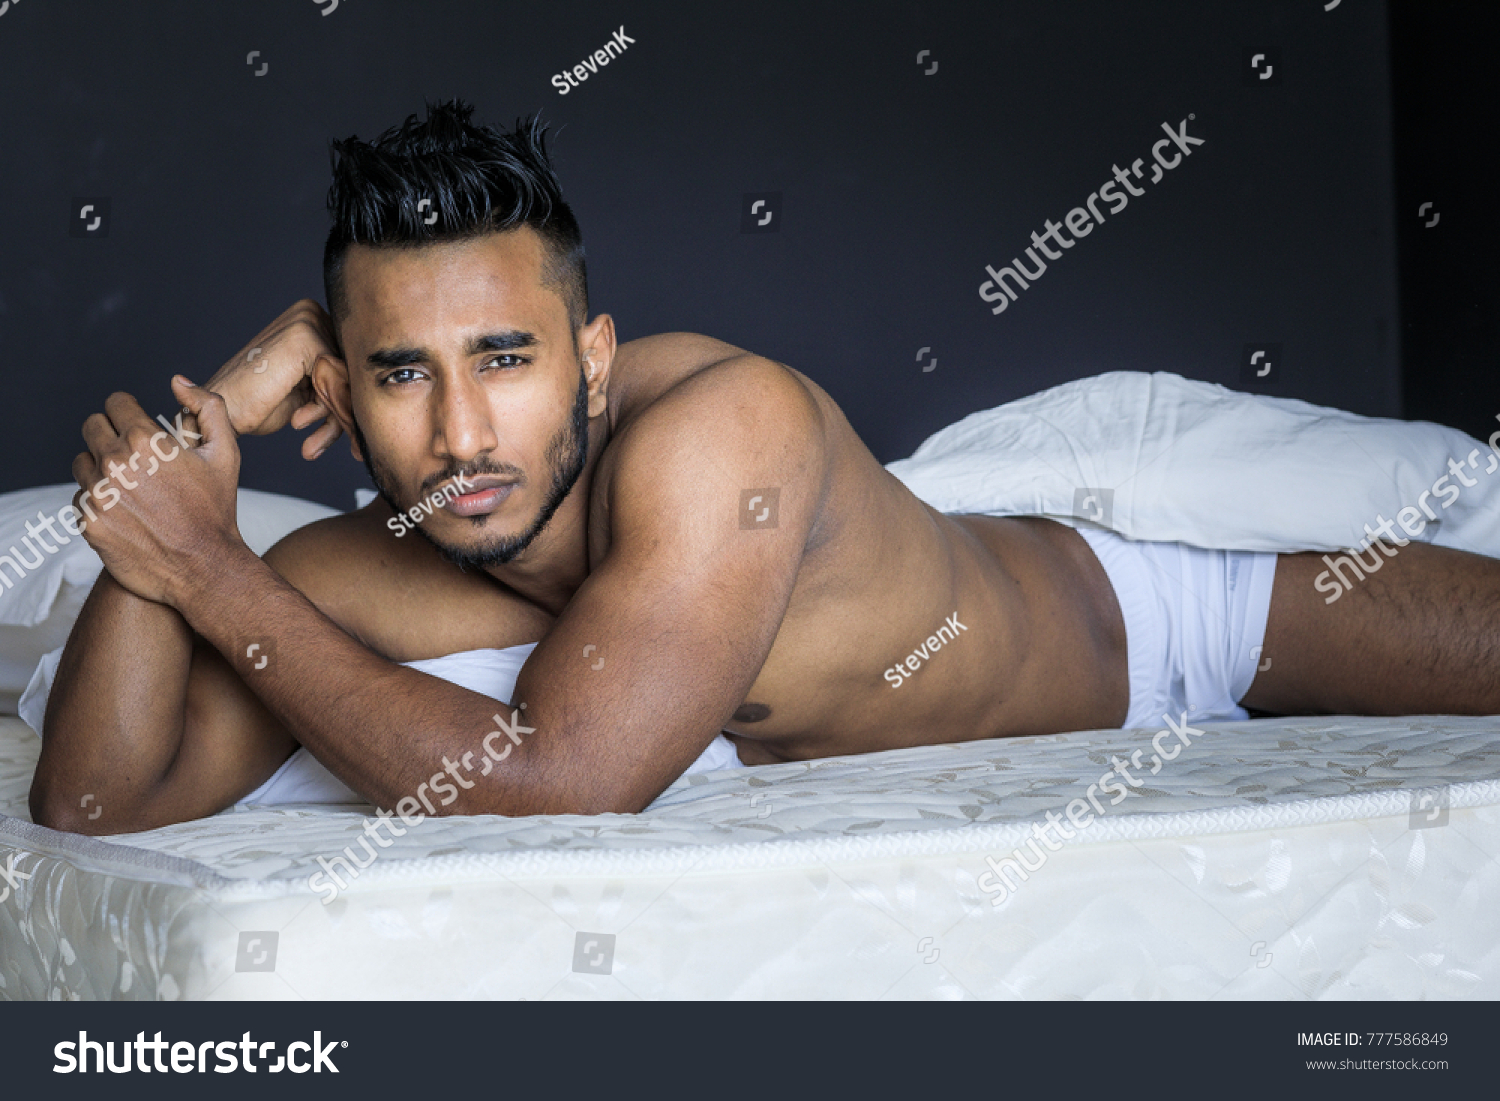 Nude muscle arab men apologise